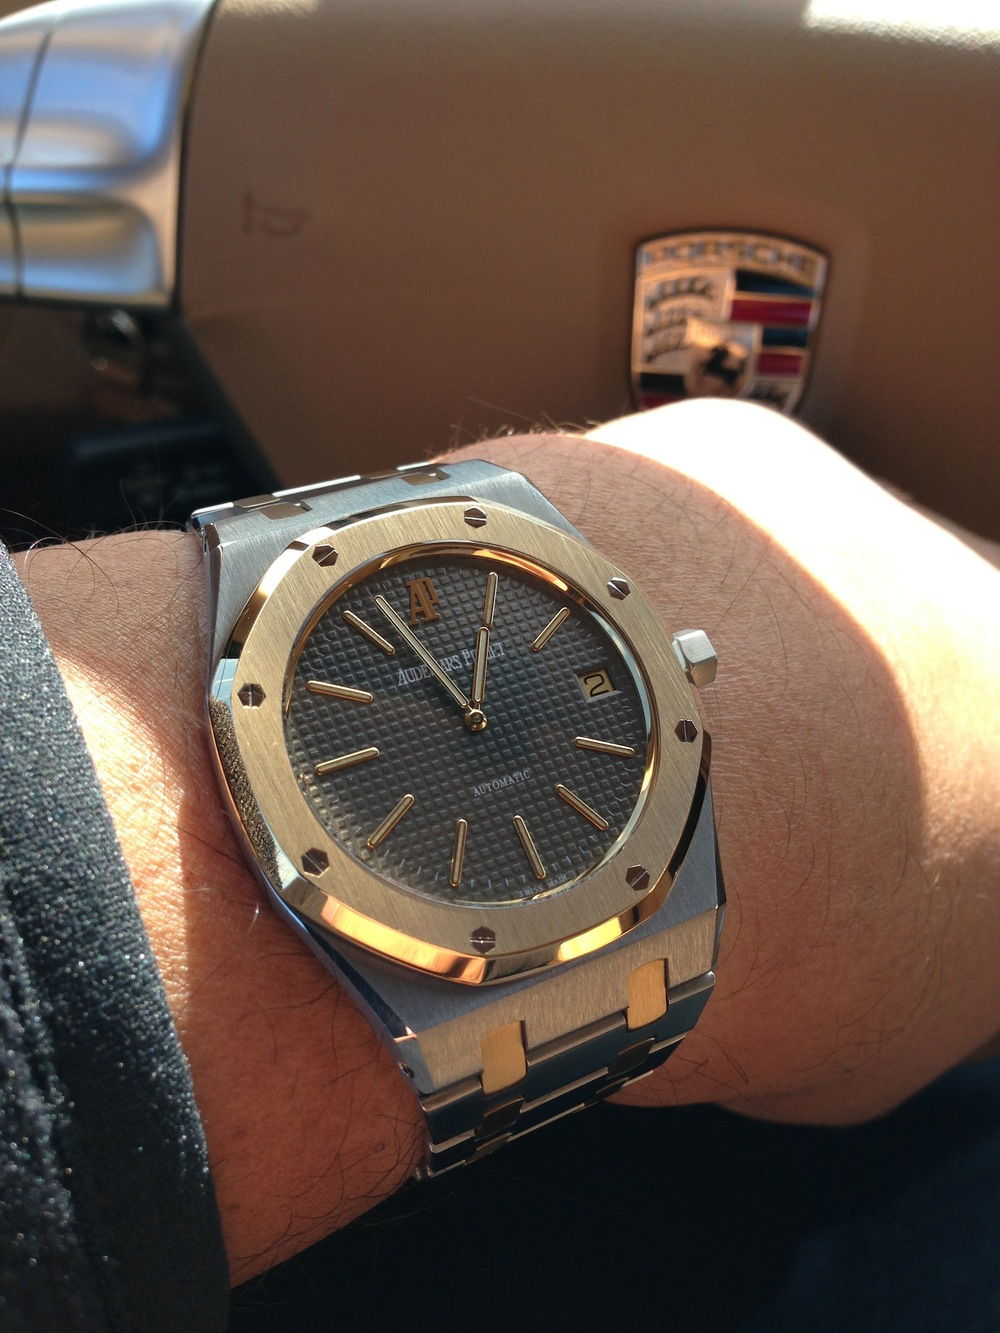 A Royal Oak Jumbo 5402SA inside the Cayman S.